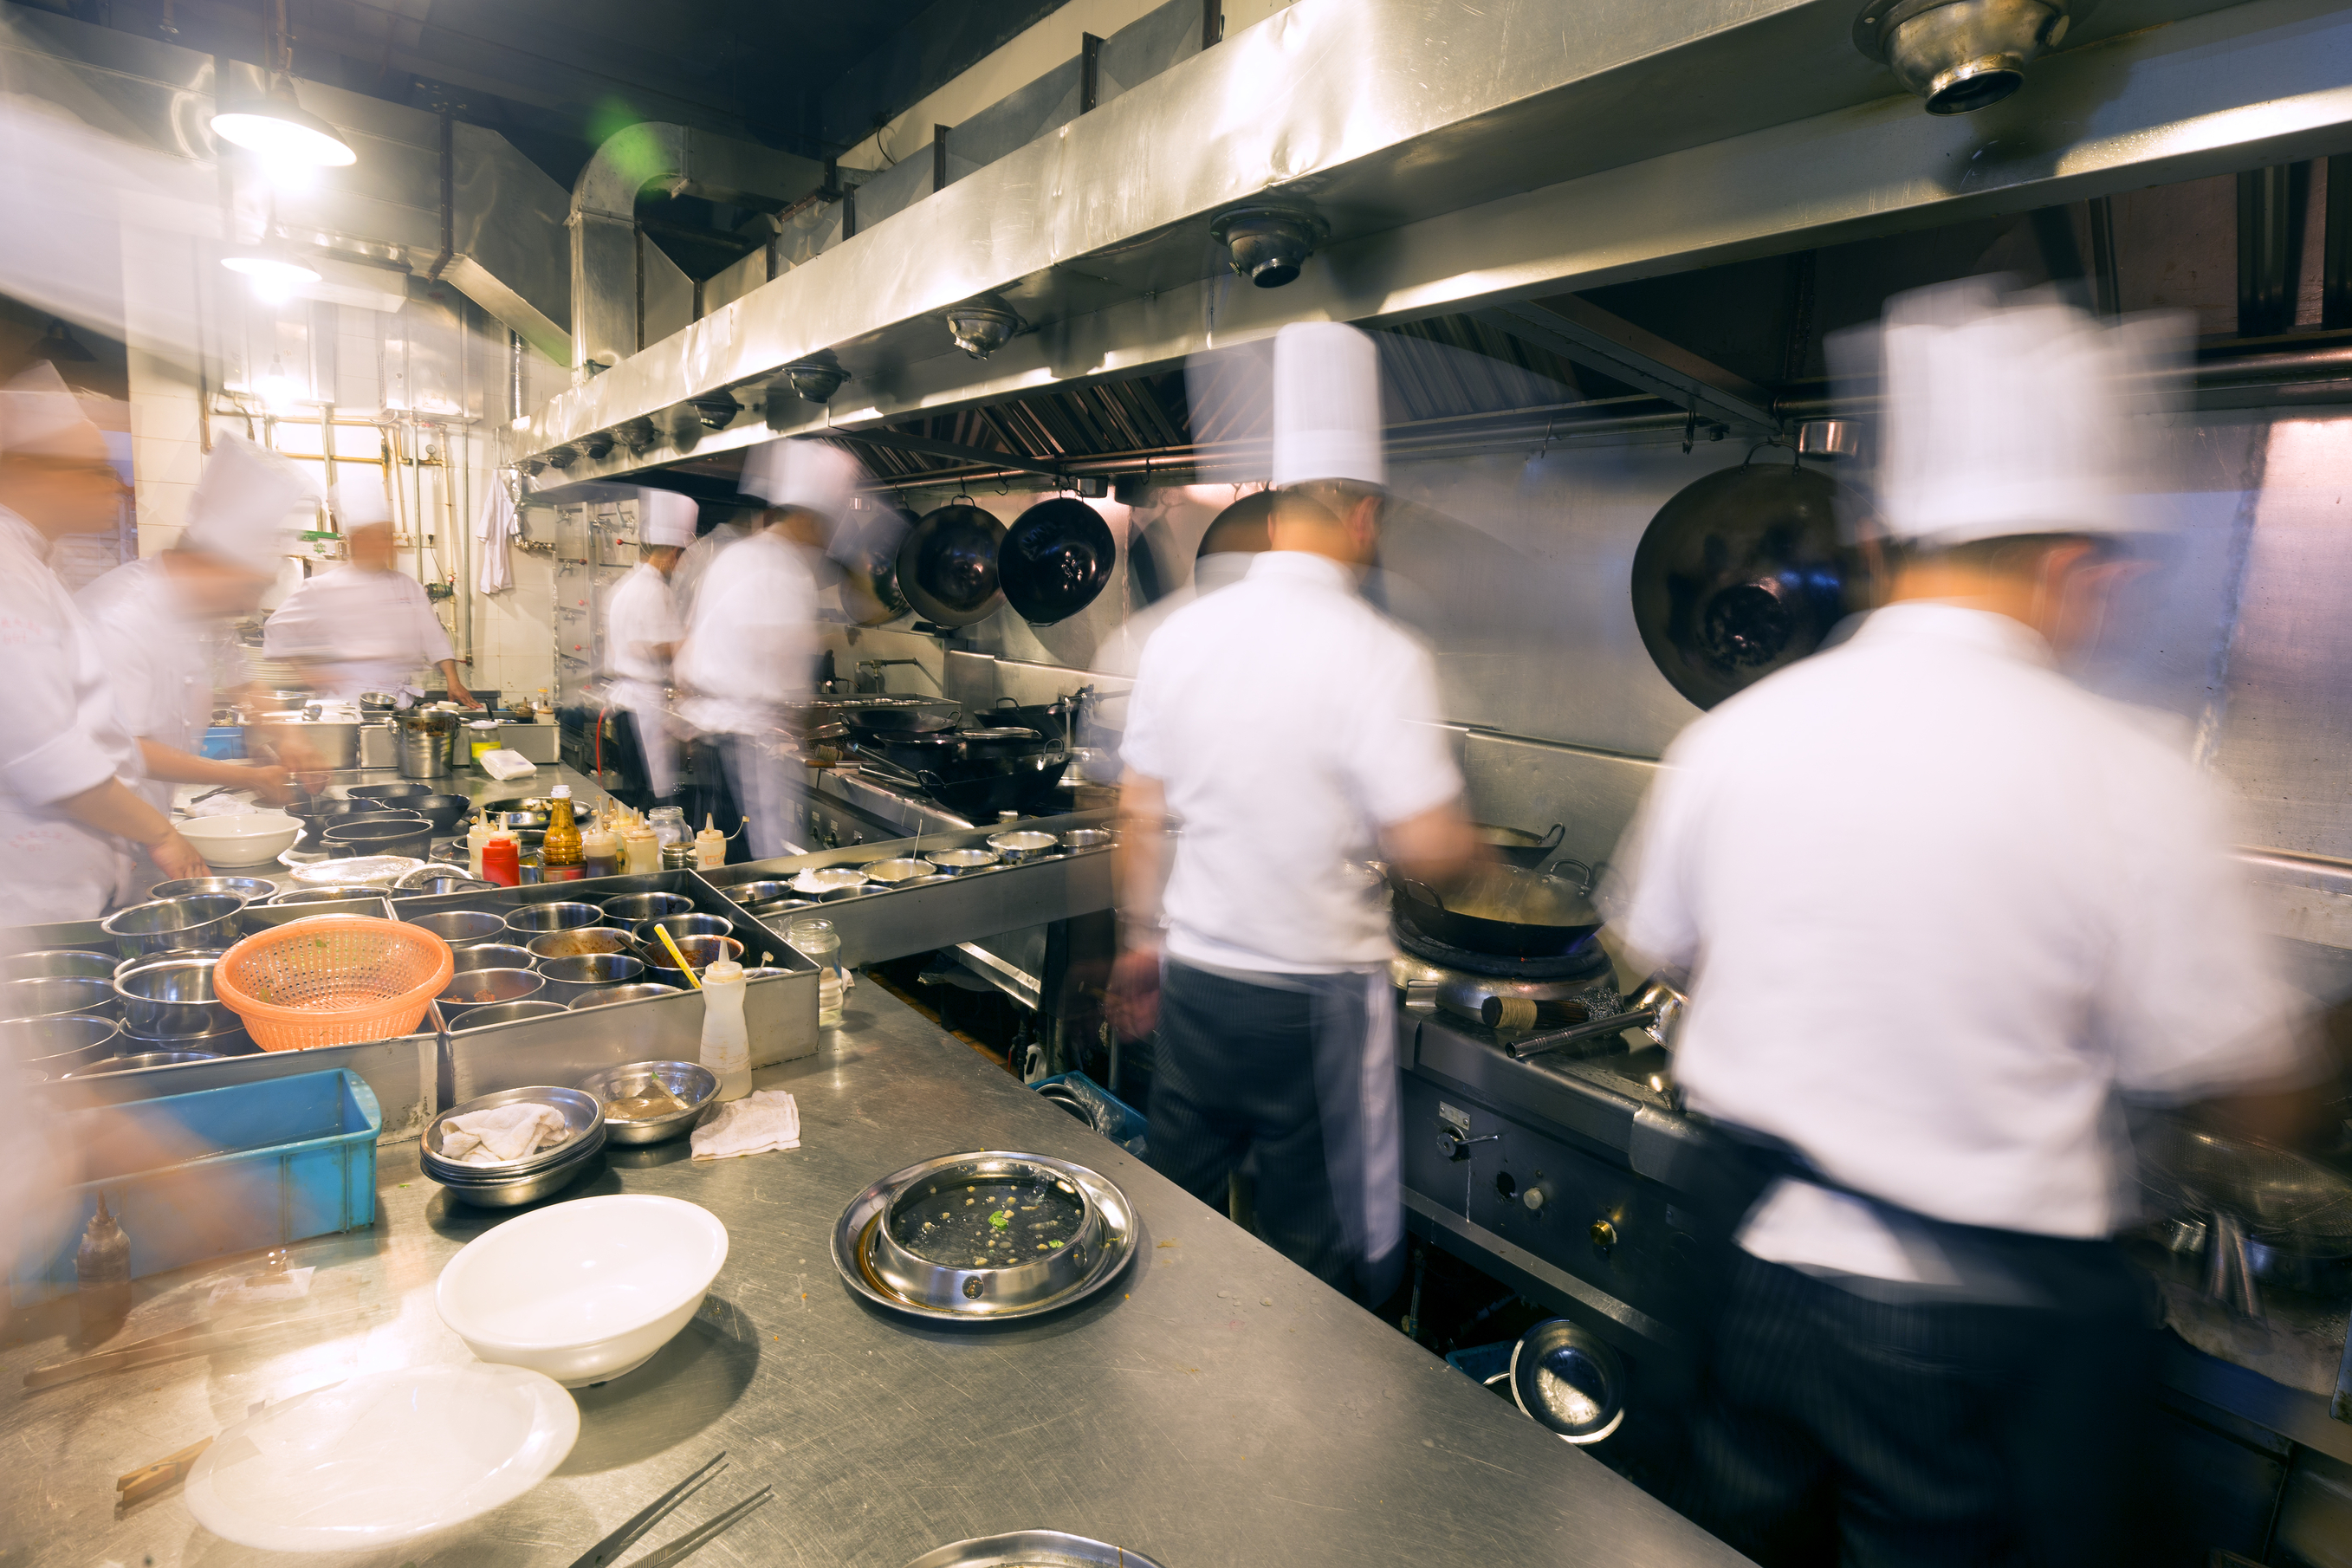 How Iodine Is Used In Commercial Kitchens